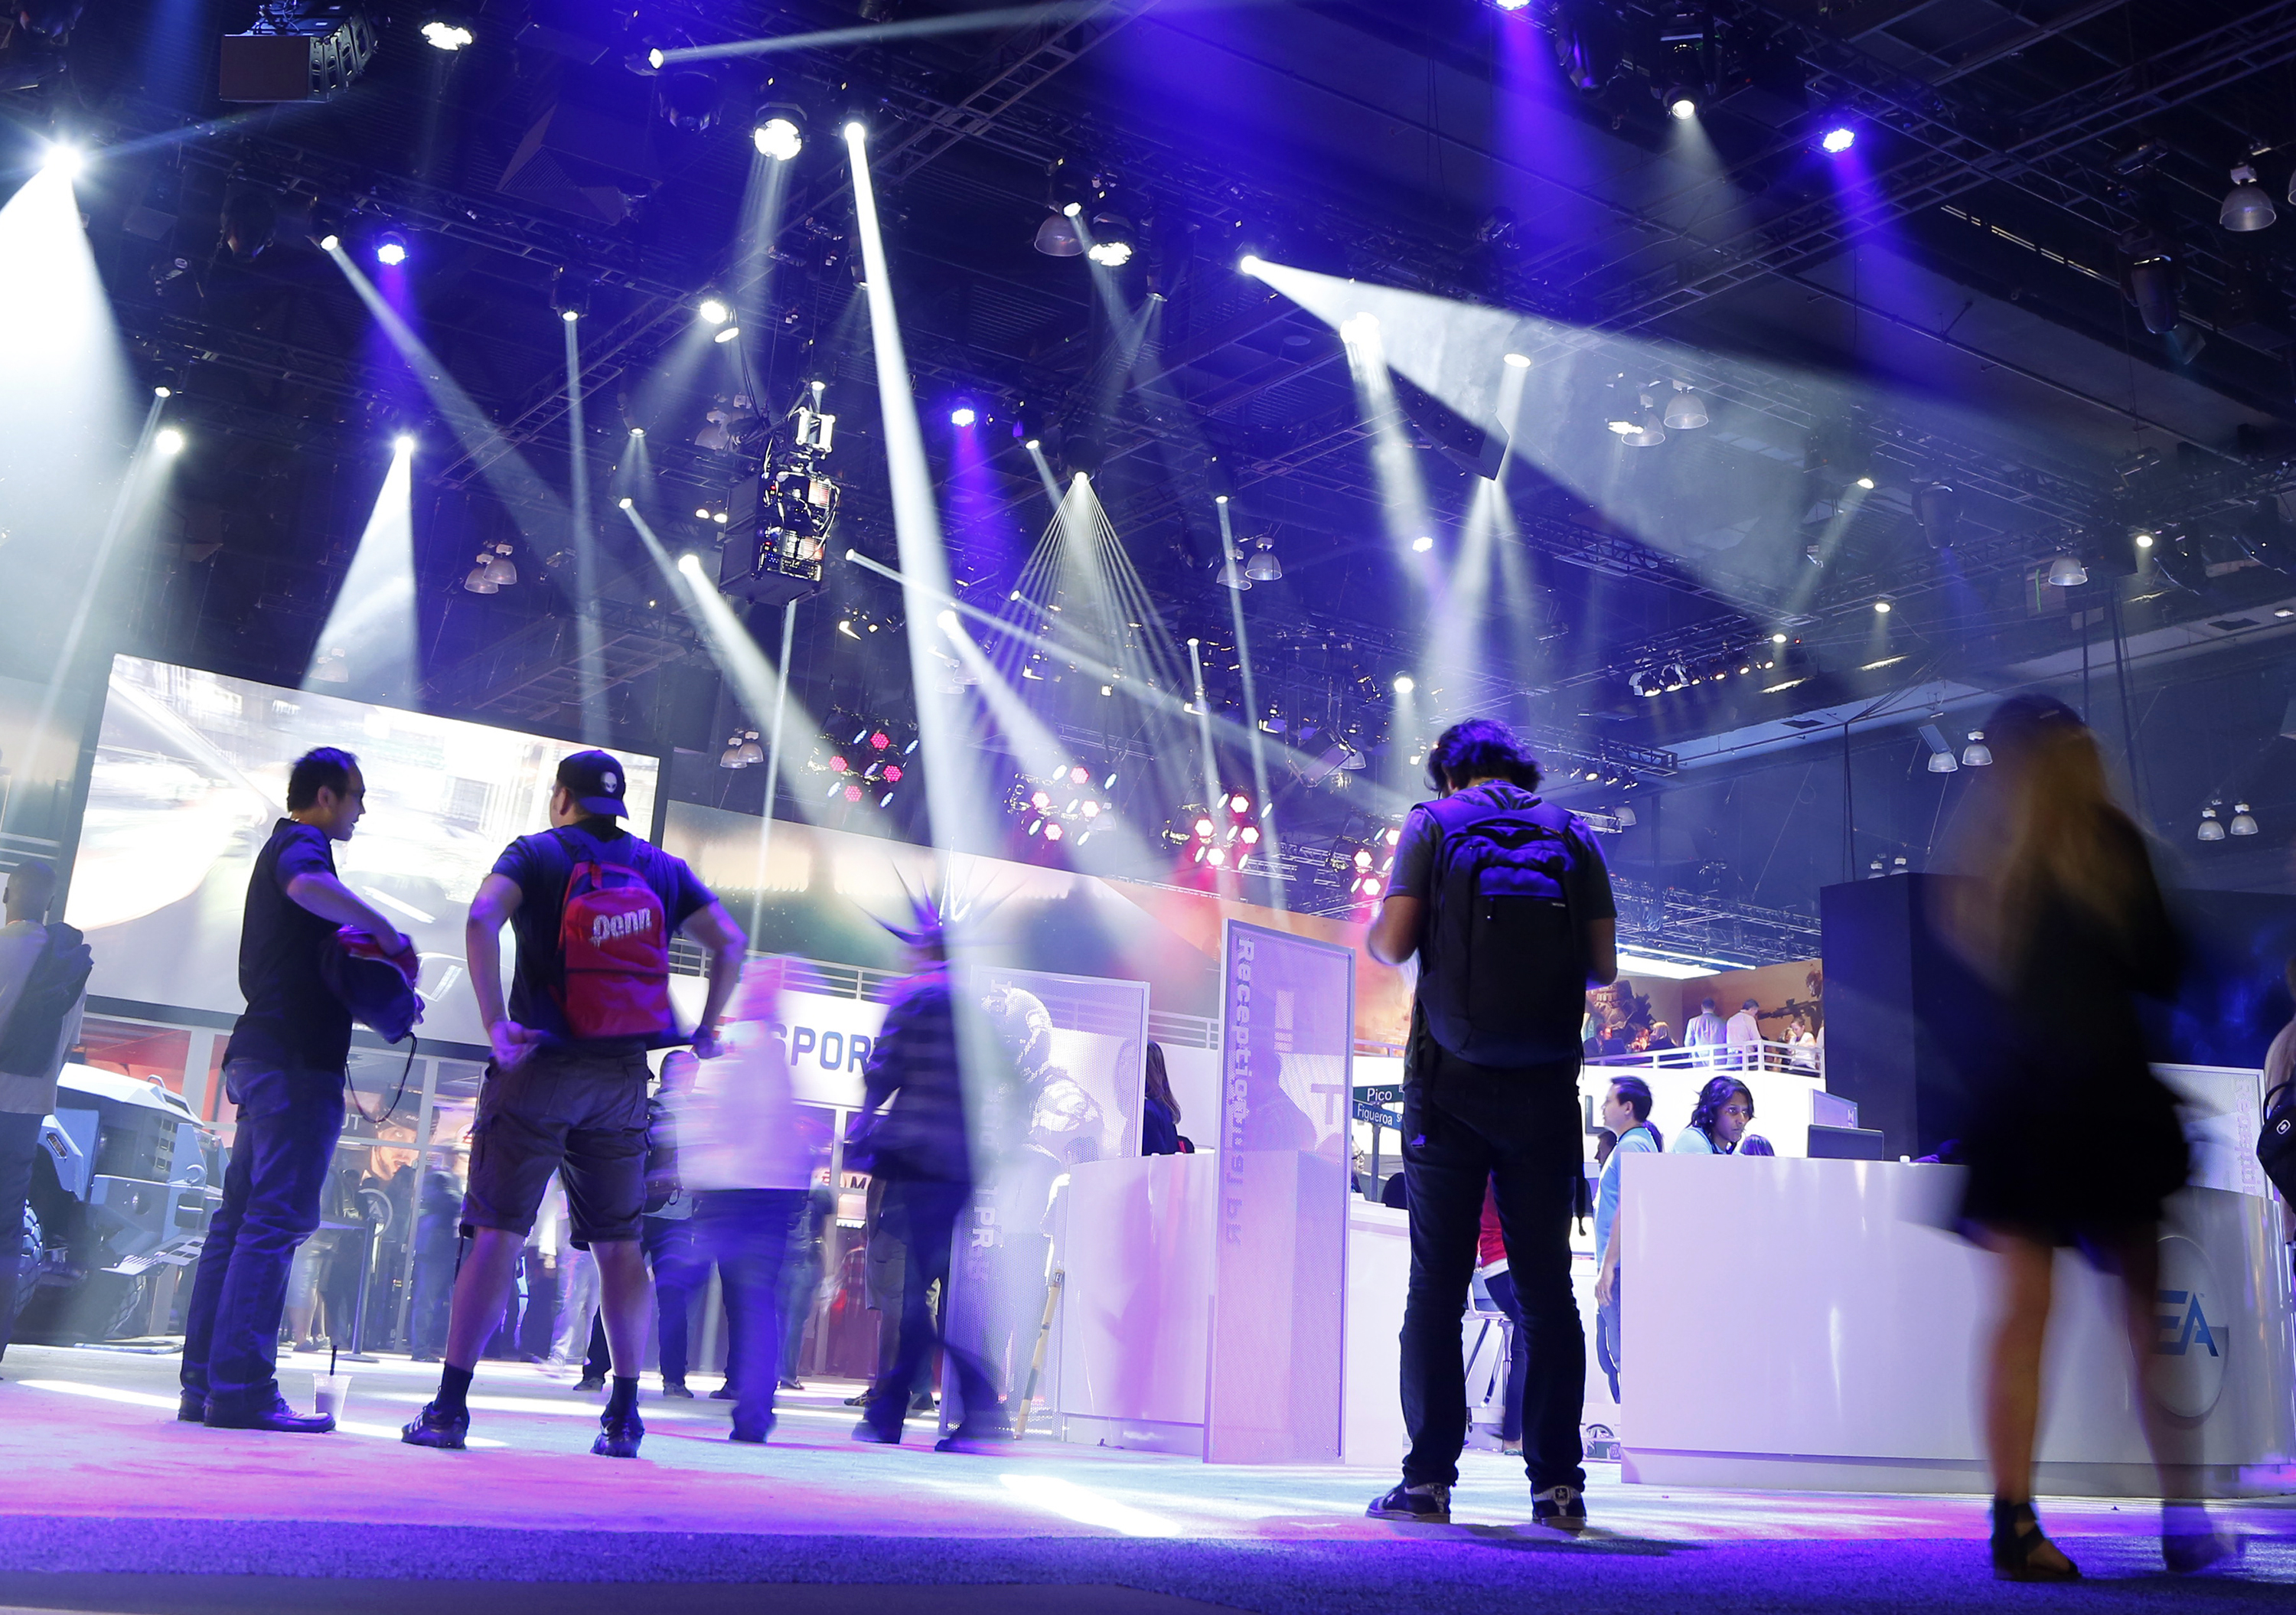 People walk in the Electronic Arts booth during the 2014 Electronic Entertainment Expo, known as E3, in Los Angeles, California June 11, 2014.  REUTERS/Jonathan Alcorn   (UNITED STATES - Tags: SCIENCE TECHNOLOGY BUSINESS SOCIETY)